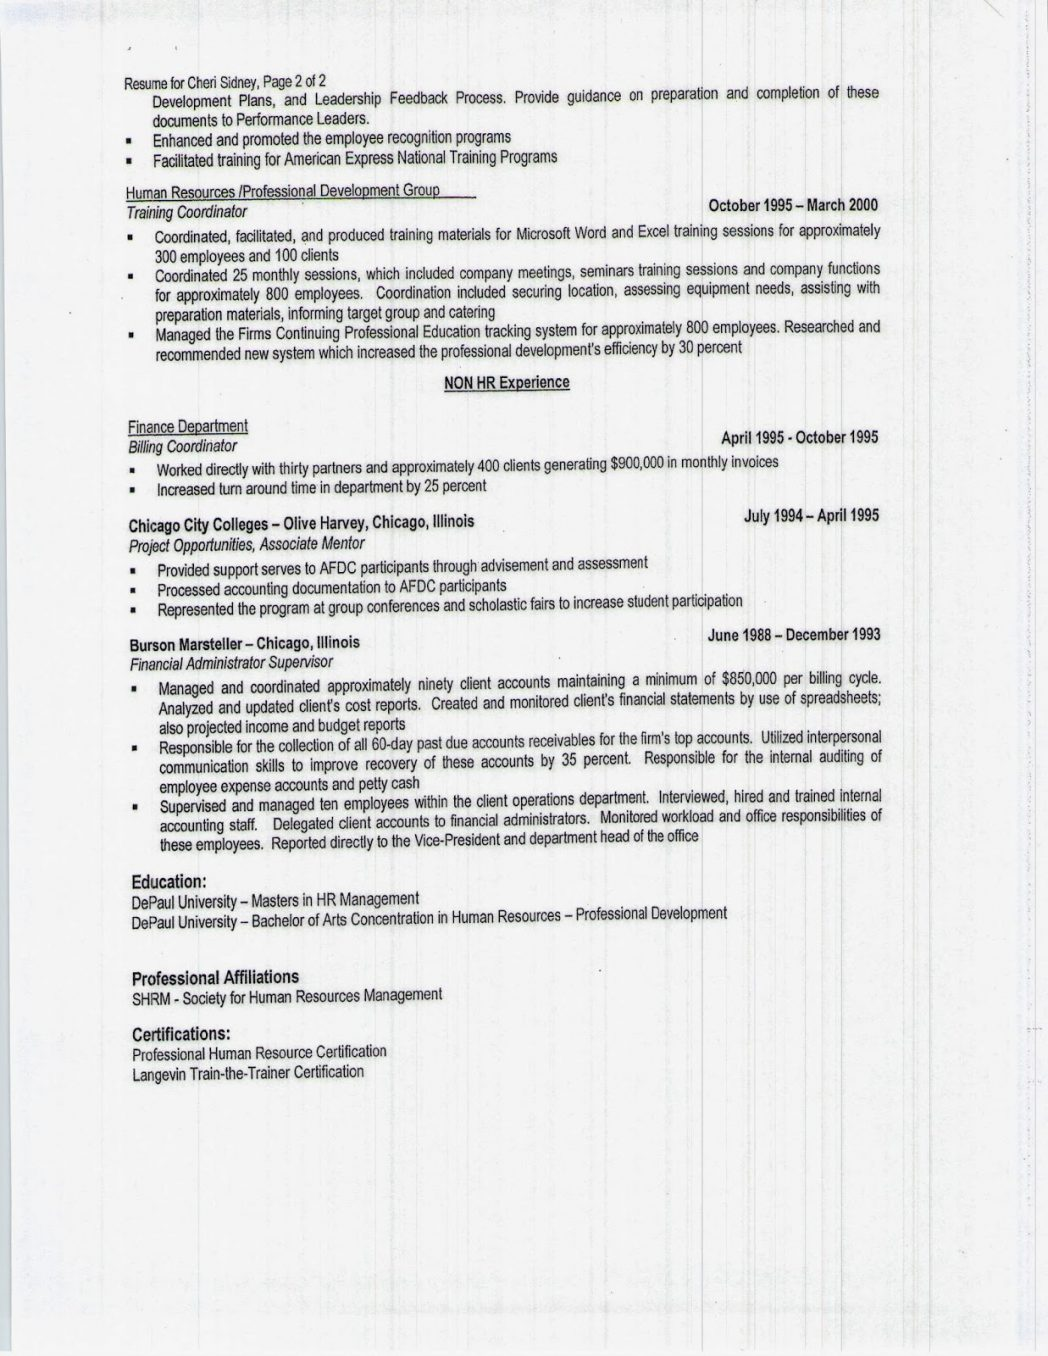 016 Essay Example No Scholarships Scholarship And Travel College School Sidne Colleges With Requirement Texas 1048x1356 Without Stunning Essays Requirements Required In Full